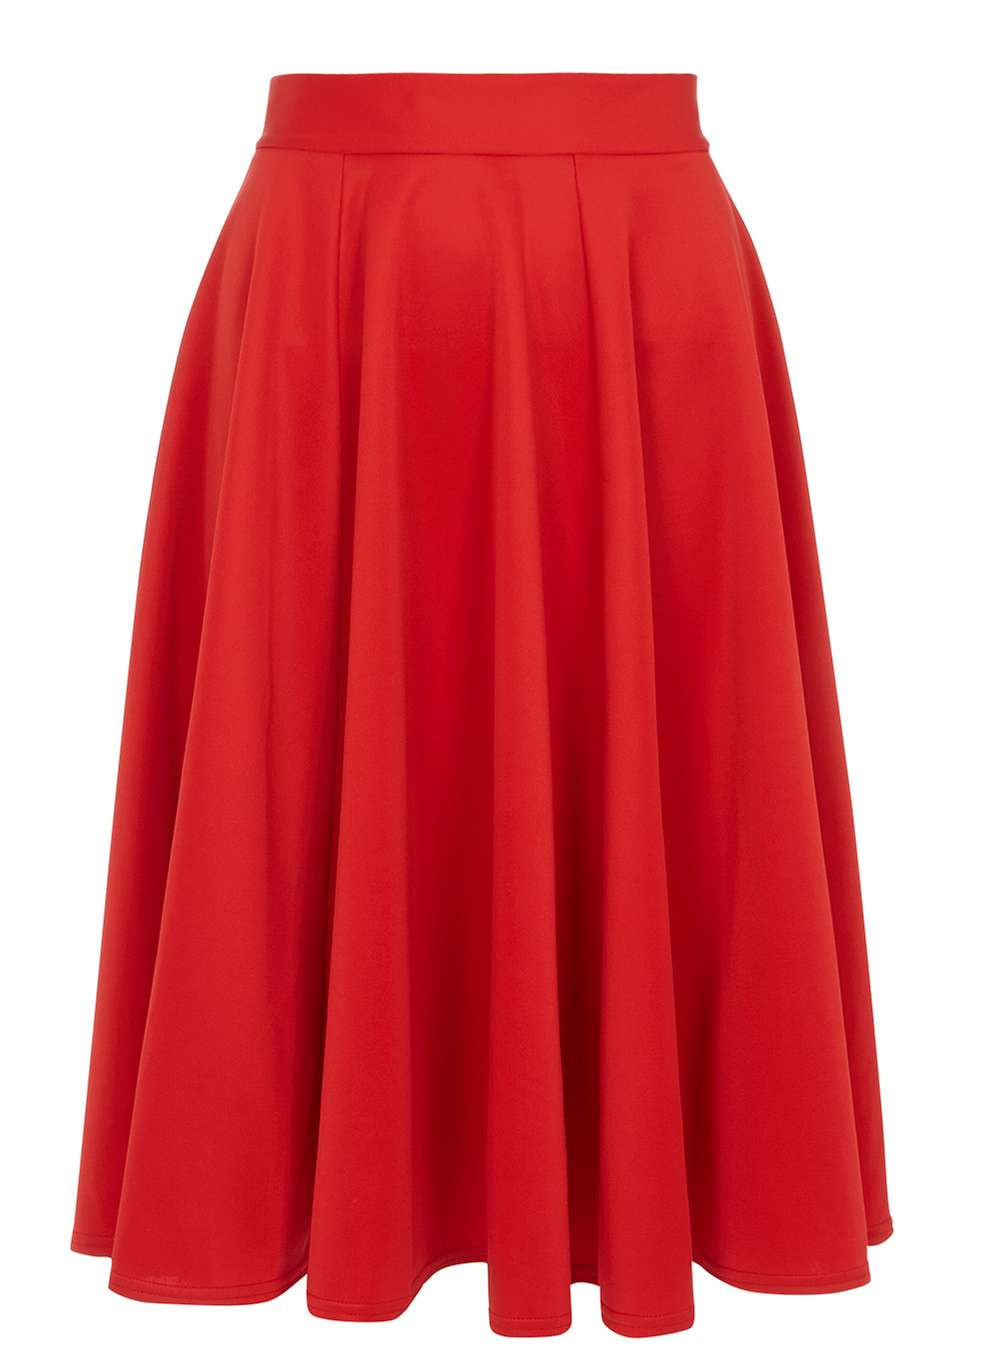 Dorothy Perkins Closet Curve Red Panel Midi Skirt In Red